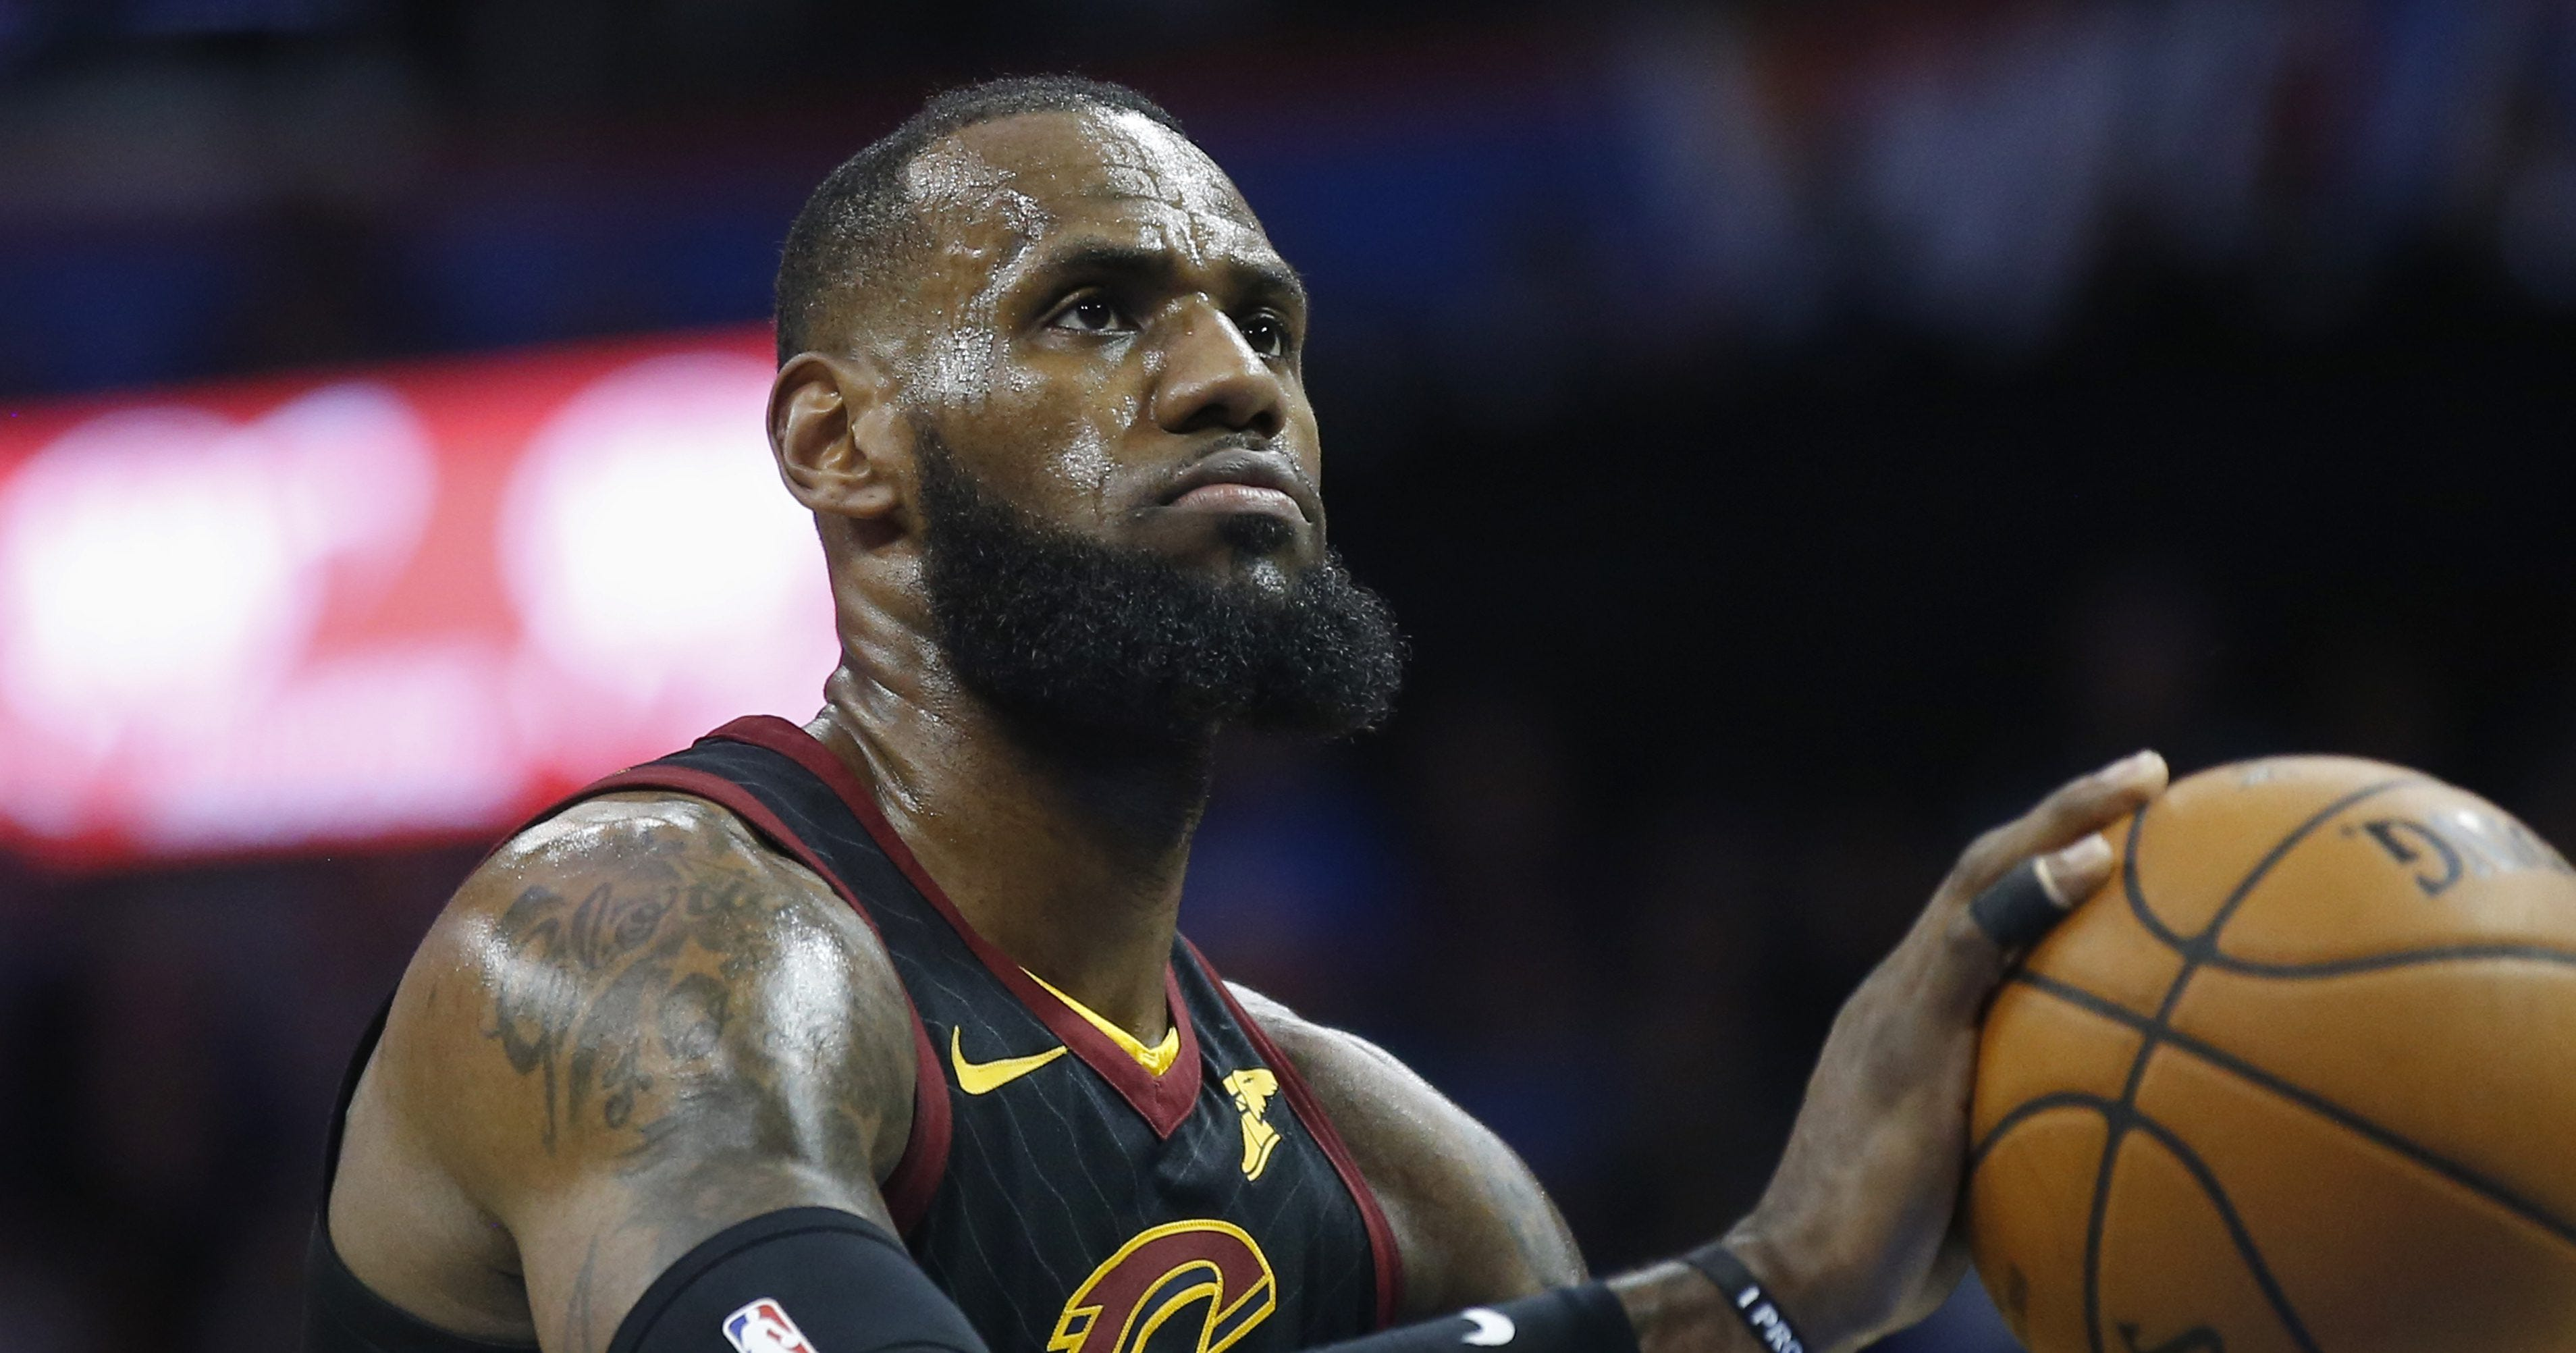 Laura Ingraham invites LeBron James to her show after telling him to 'shut up and dribble'